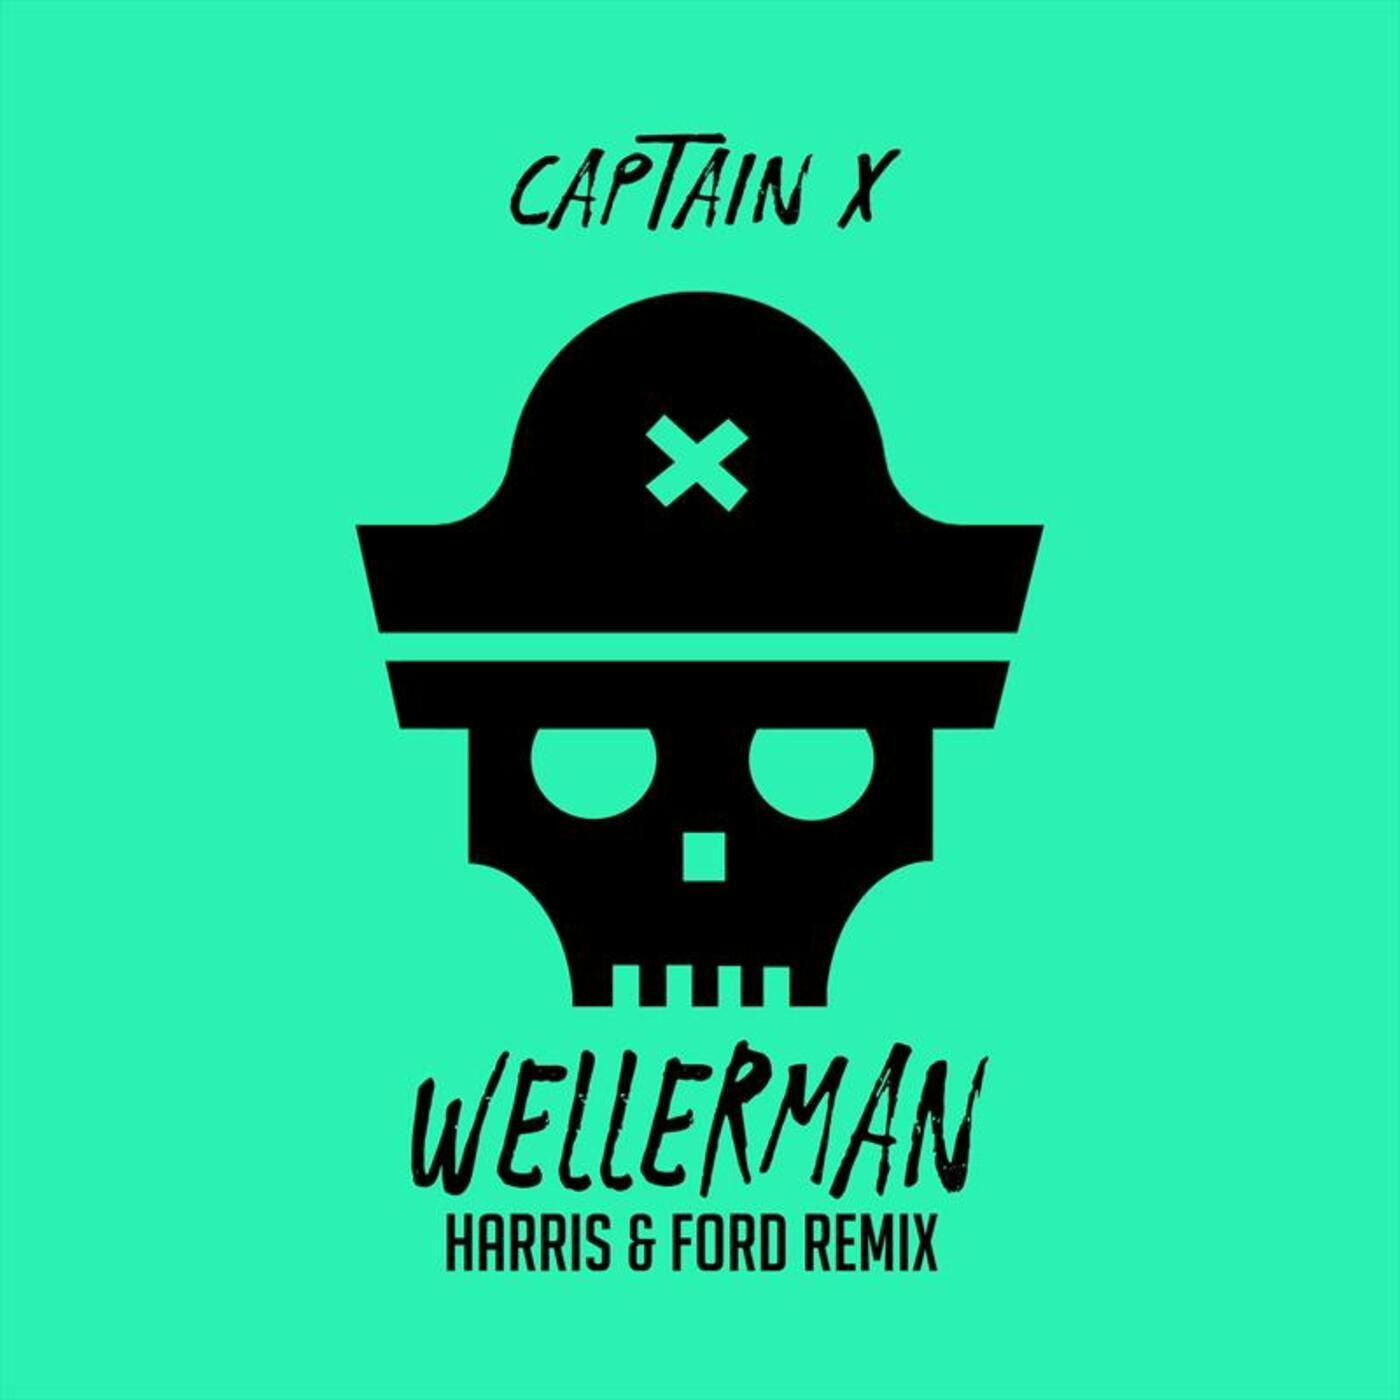 Wellerman (Harris & Ford Extended Remix)